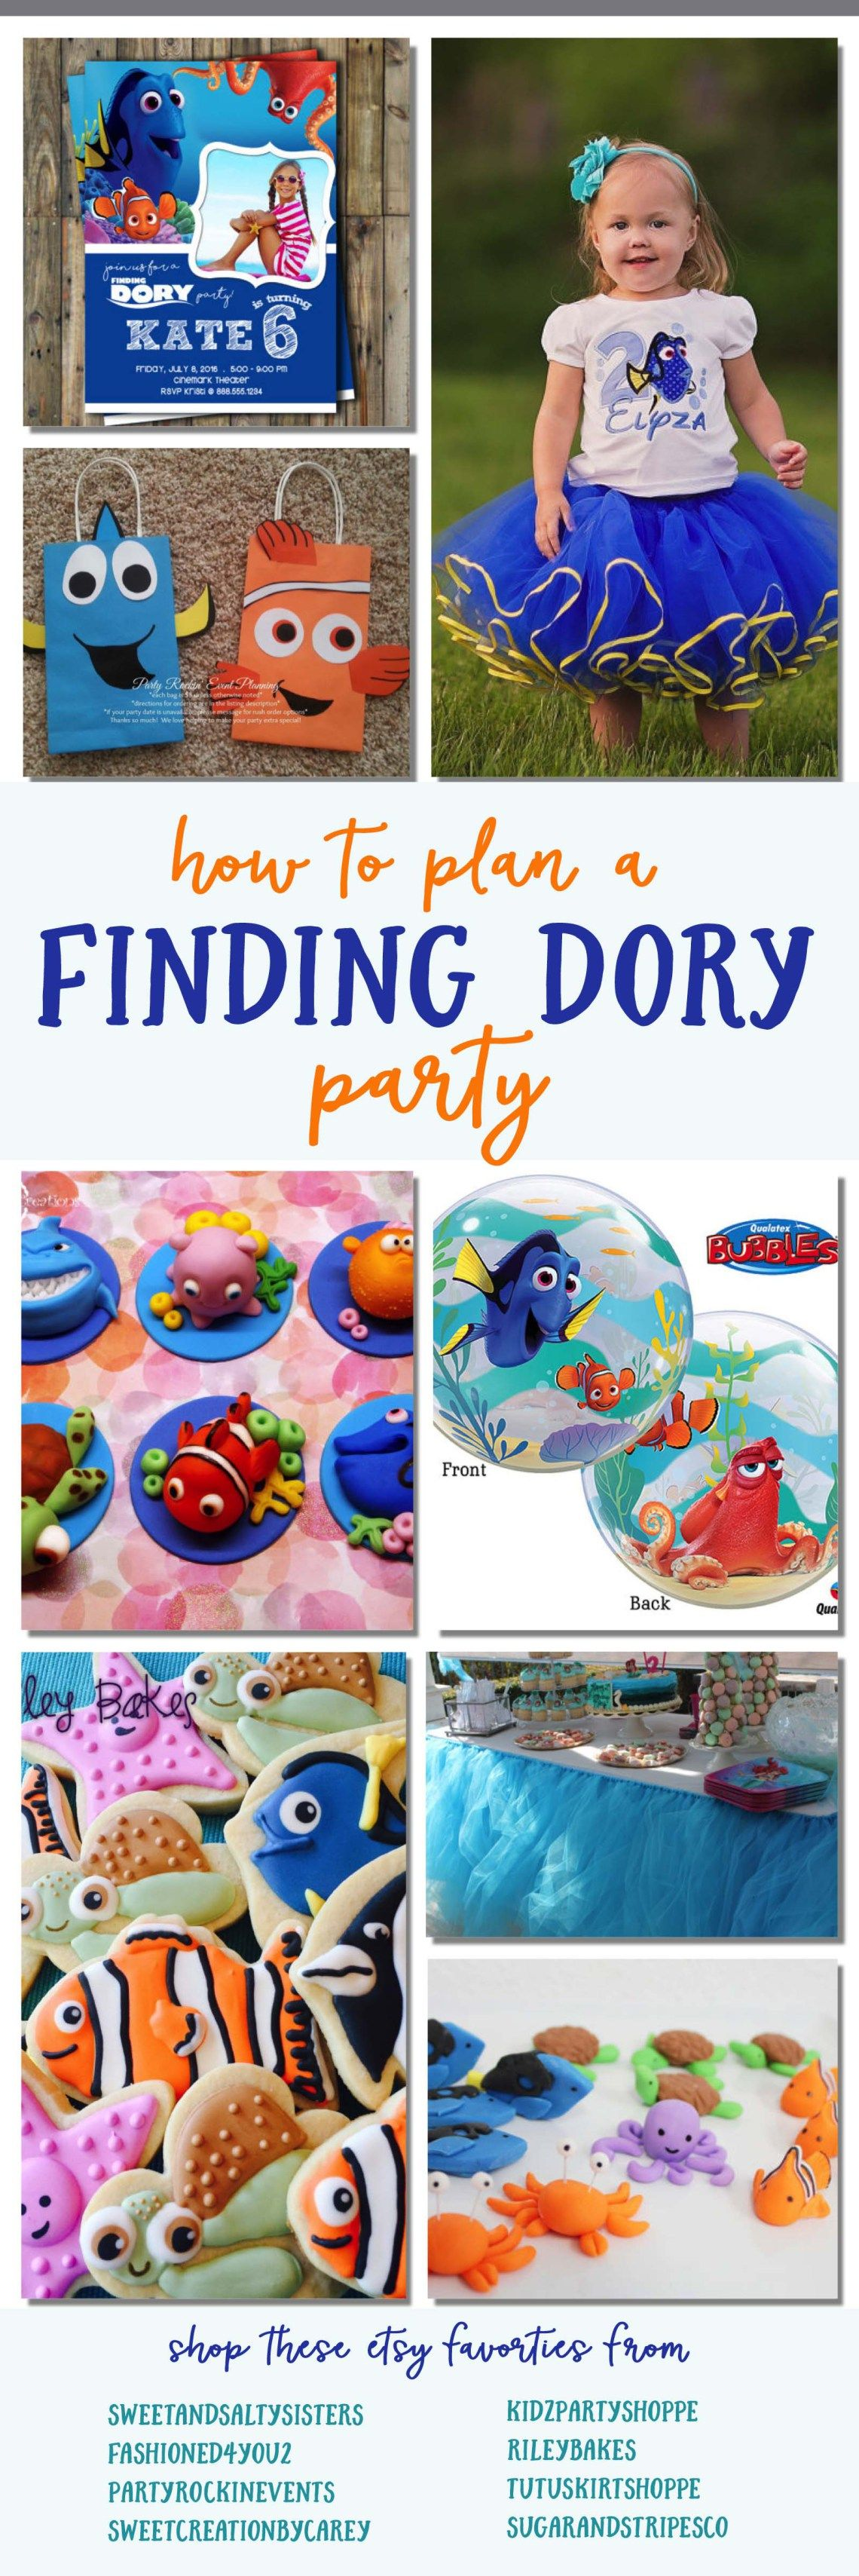 Finding Dory Party Planner